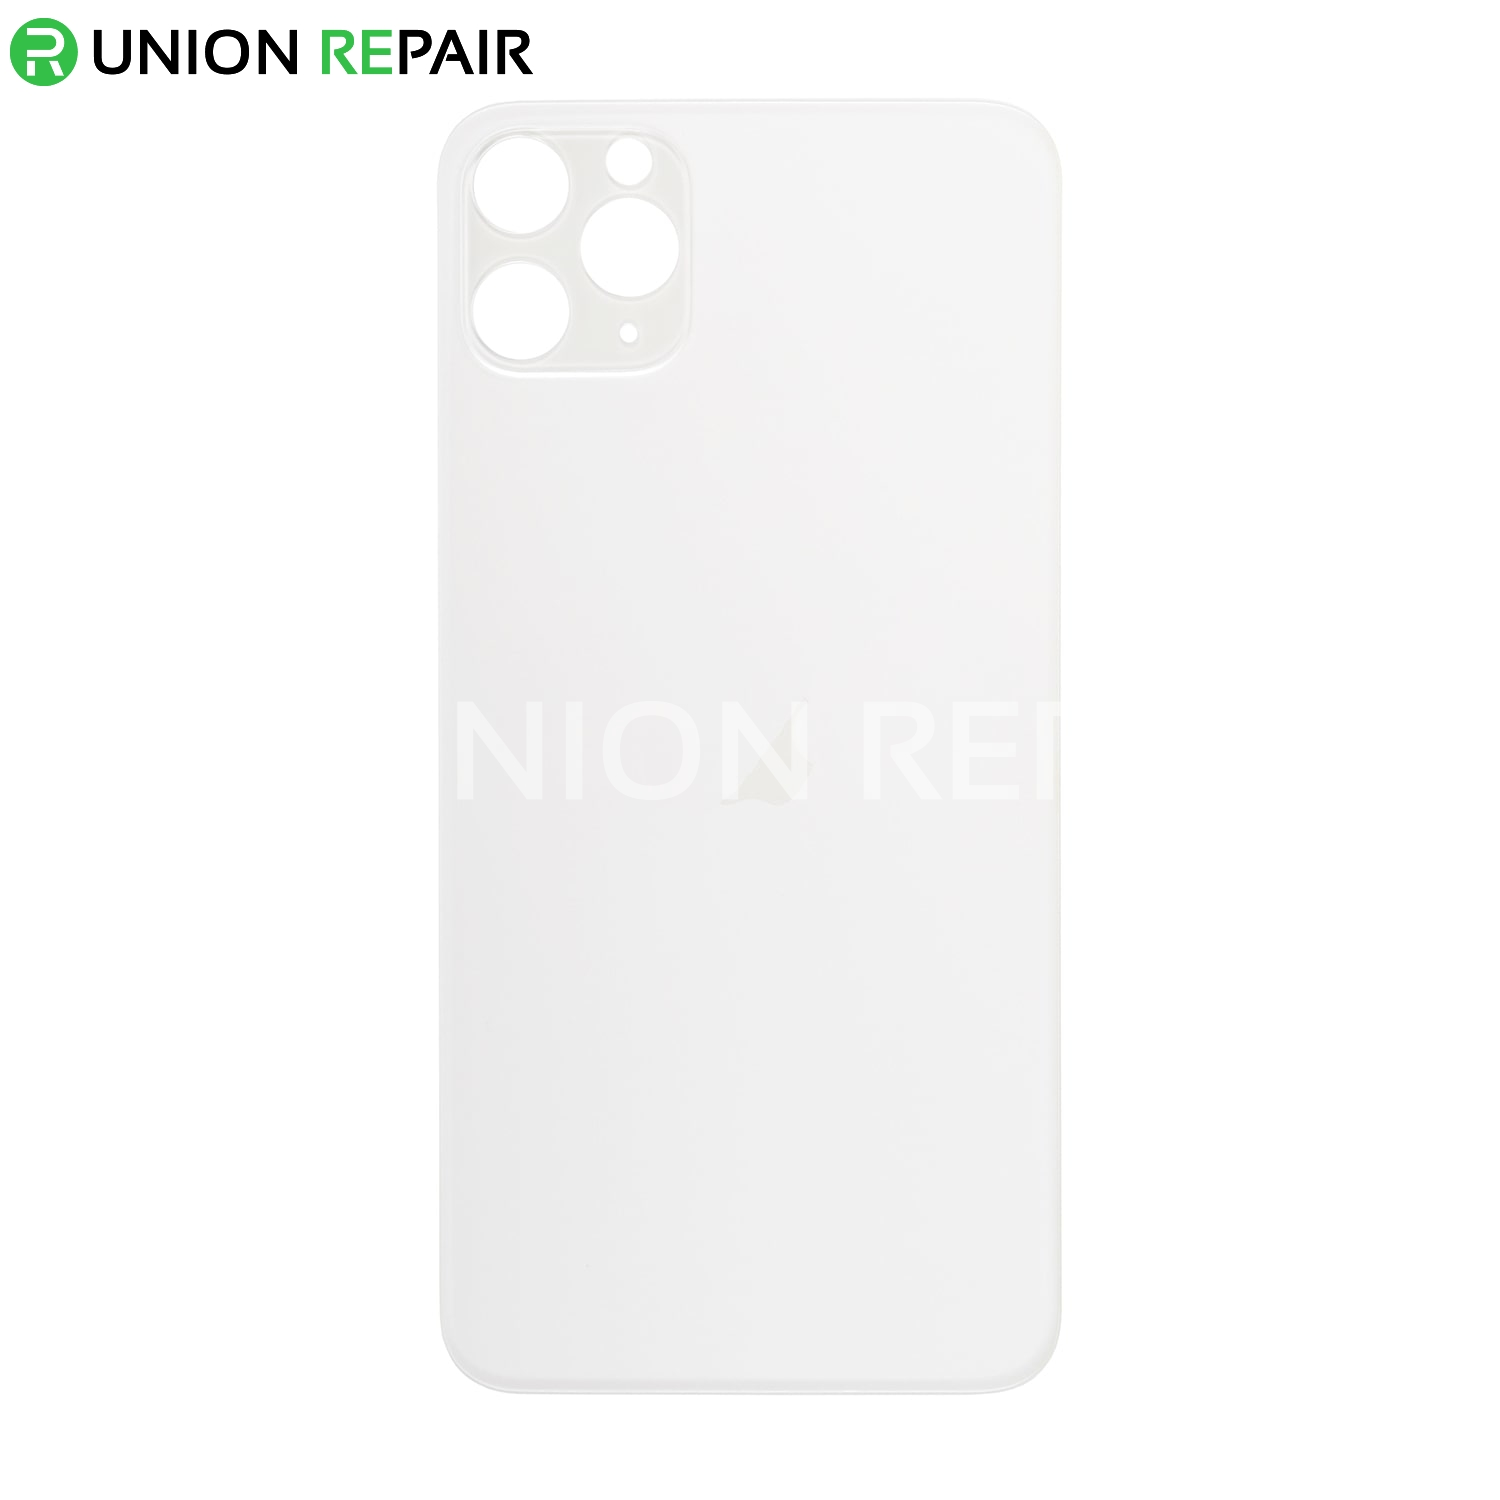 Replacement for iPhone 11 Pro Back Cover - Silver